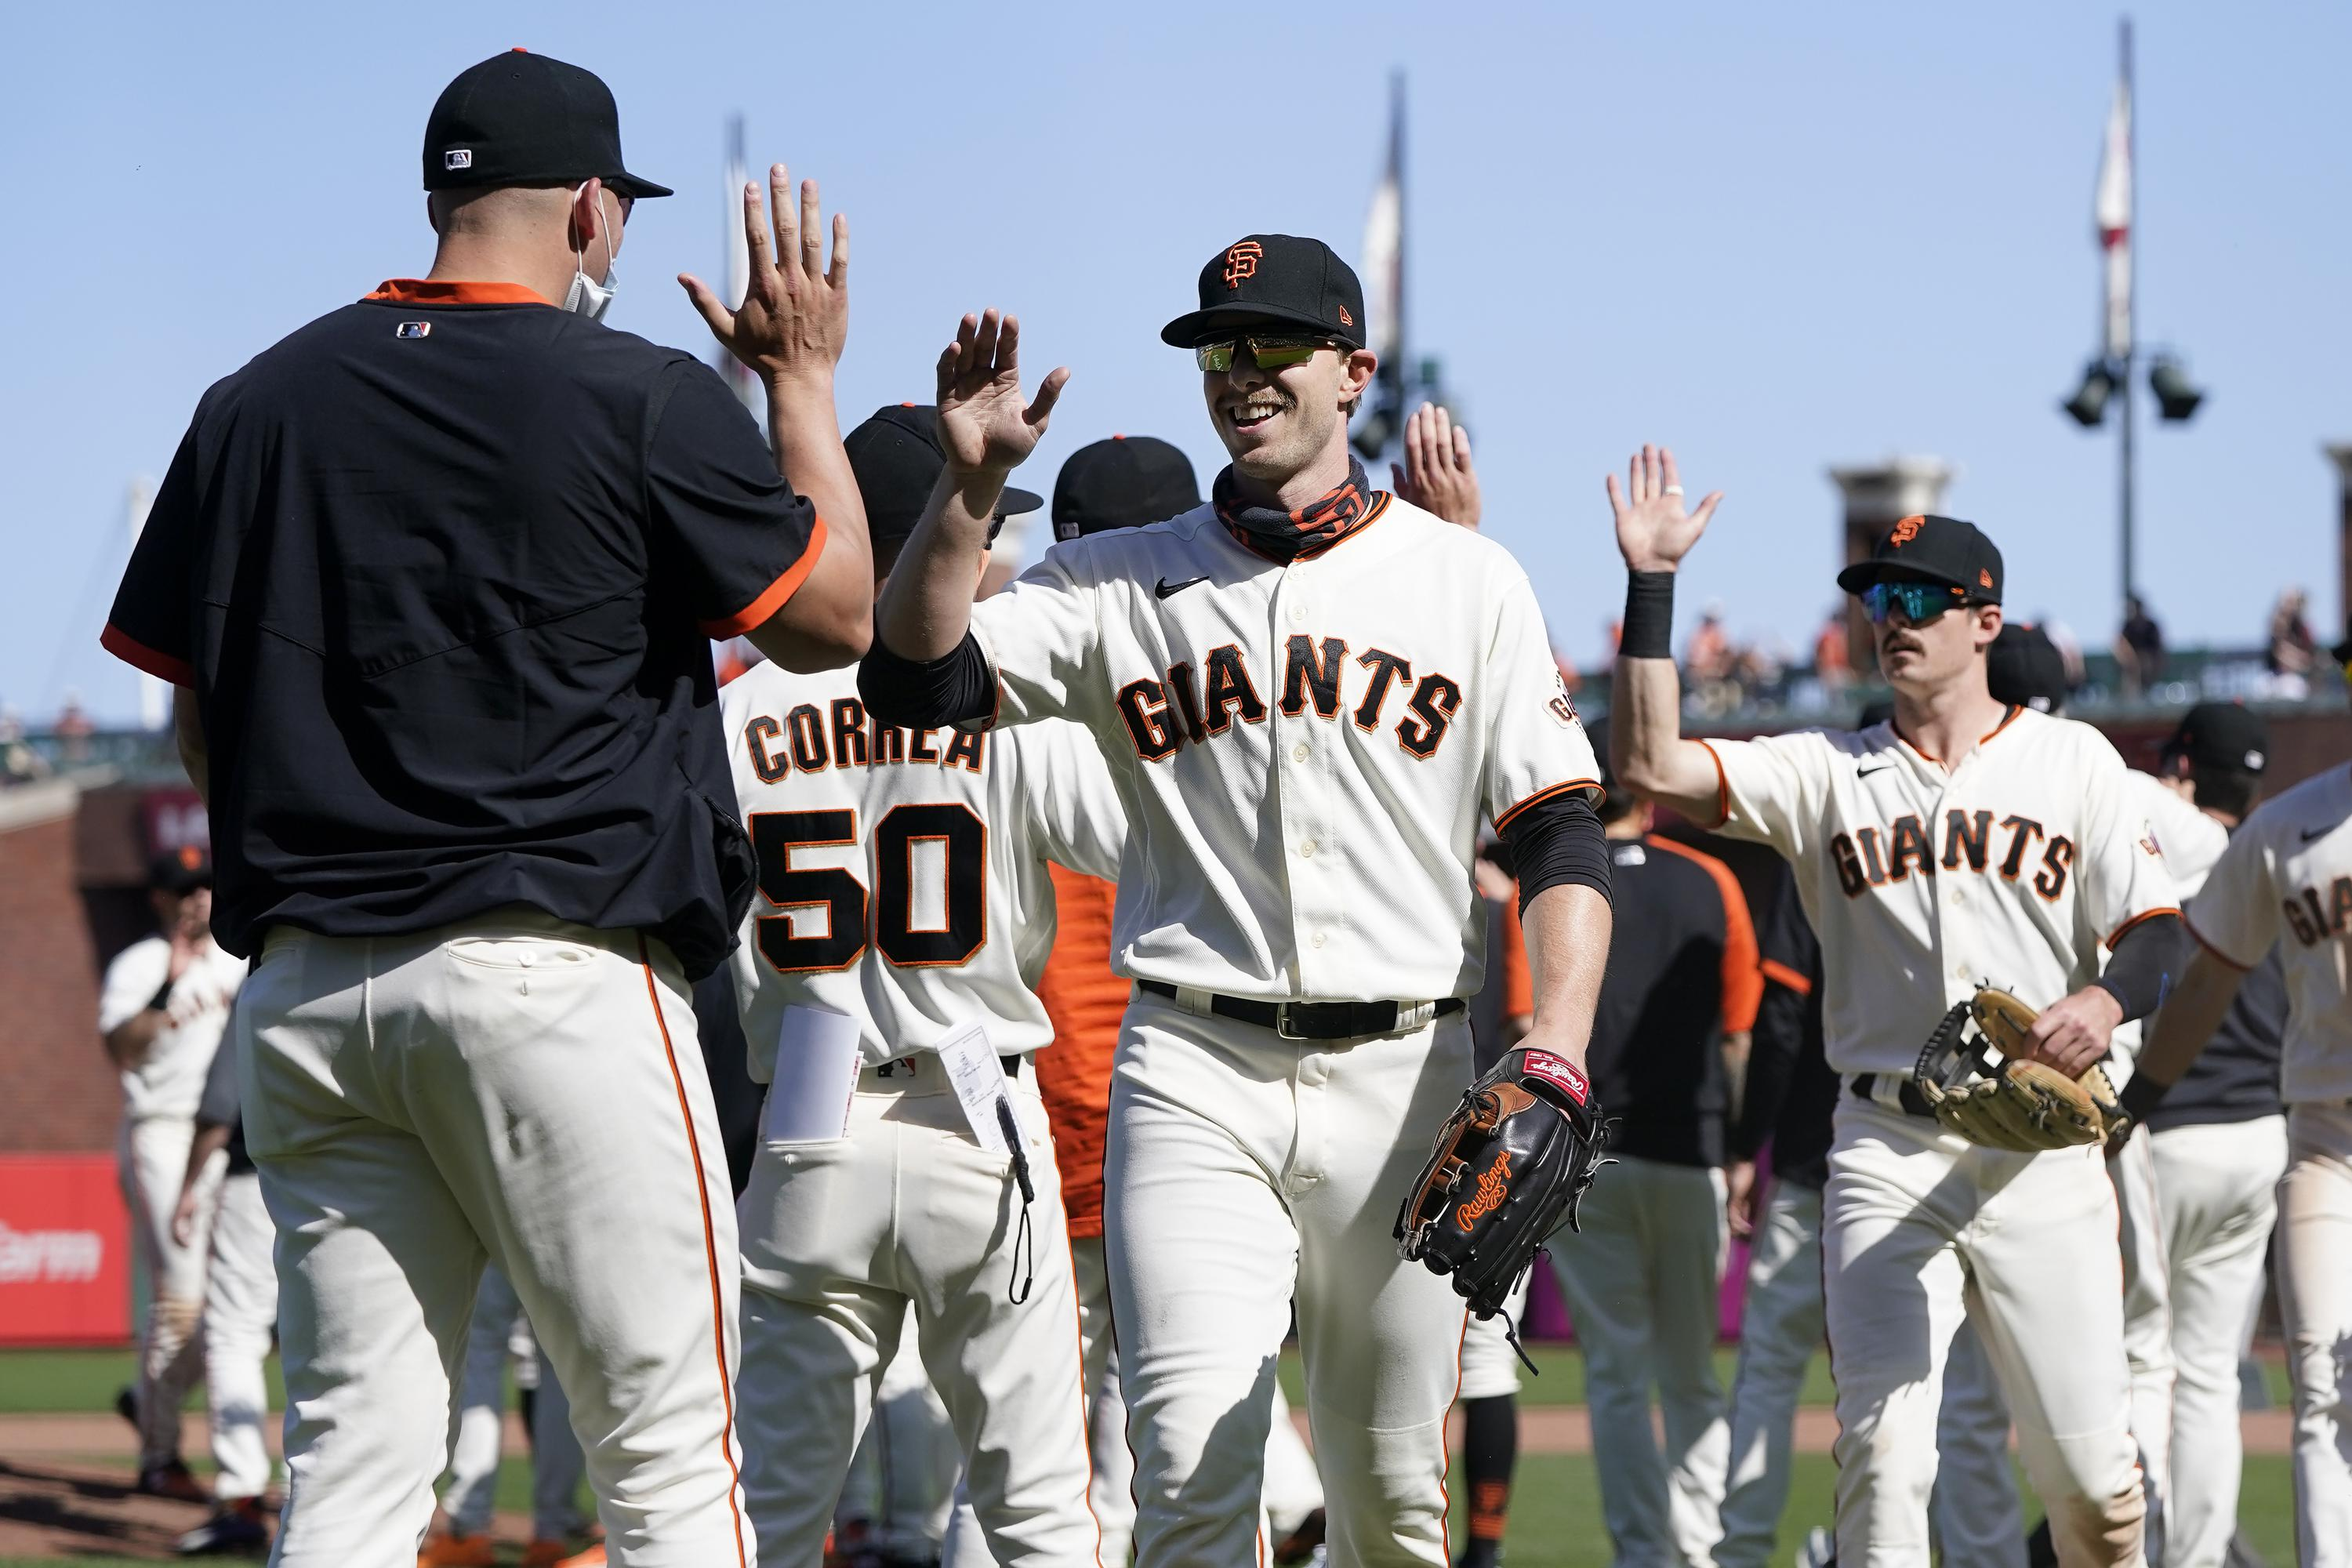 Giants hit 3 HRs, Gausman solid in a 7-1 win over Padres